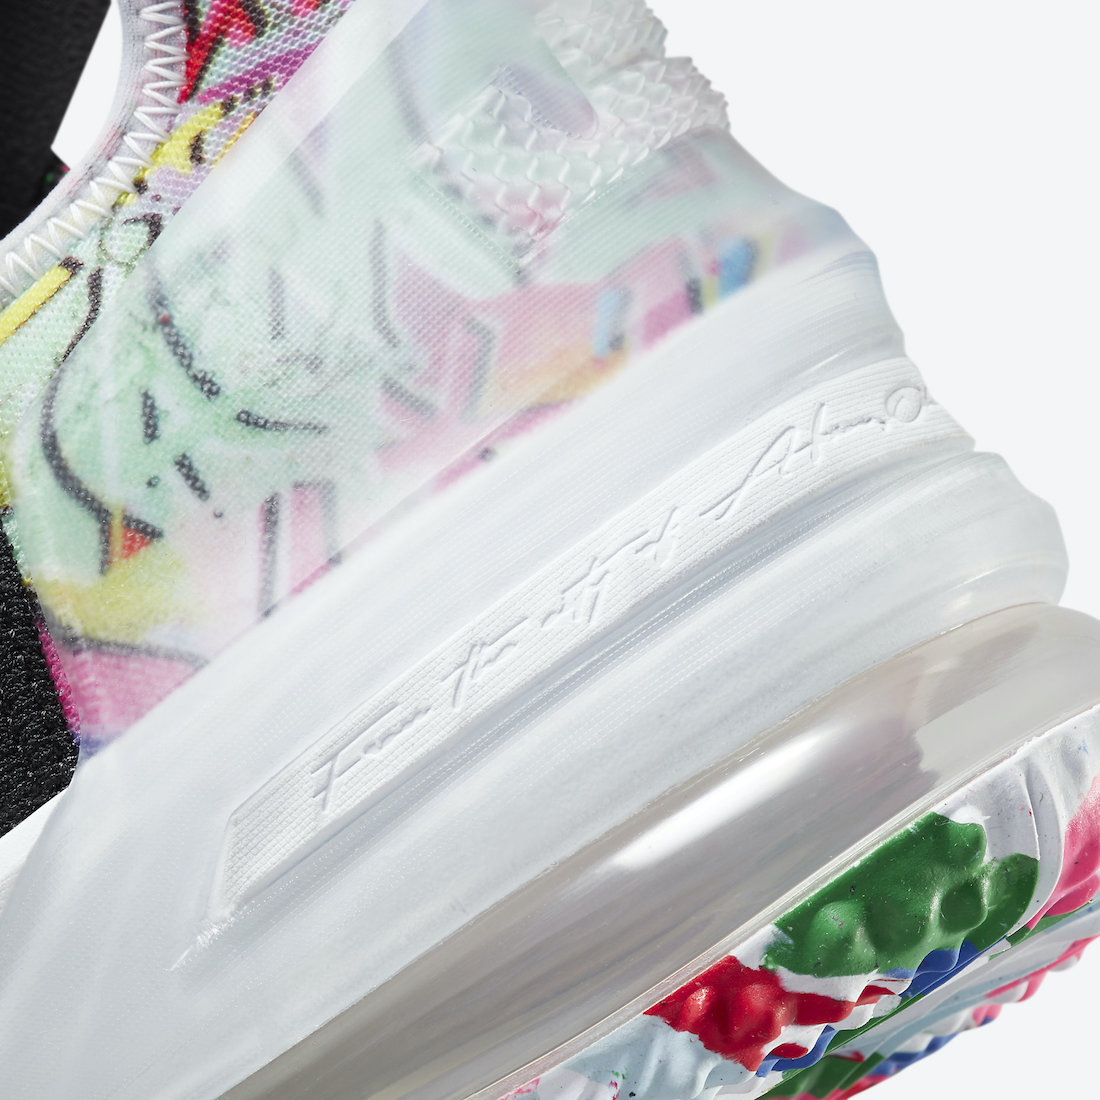 Nike-LeBron-18-James-Gang-Multicolor-CQ9283-002-Release-Date-7